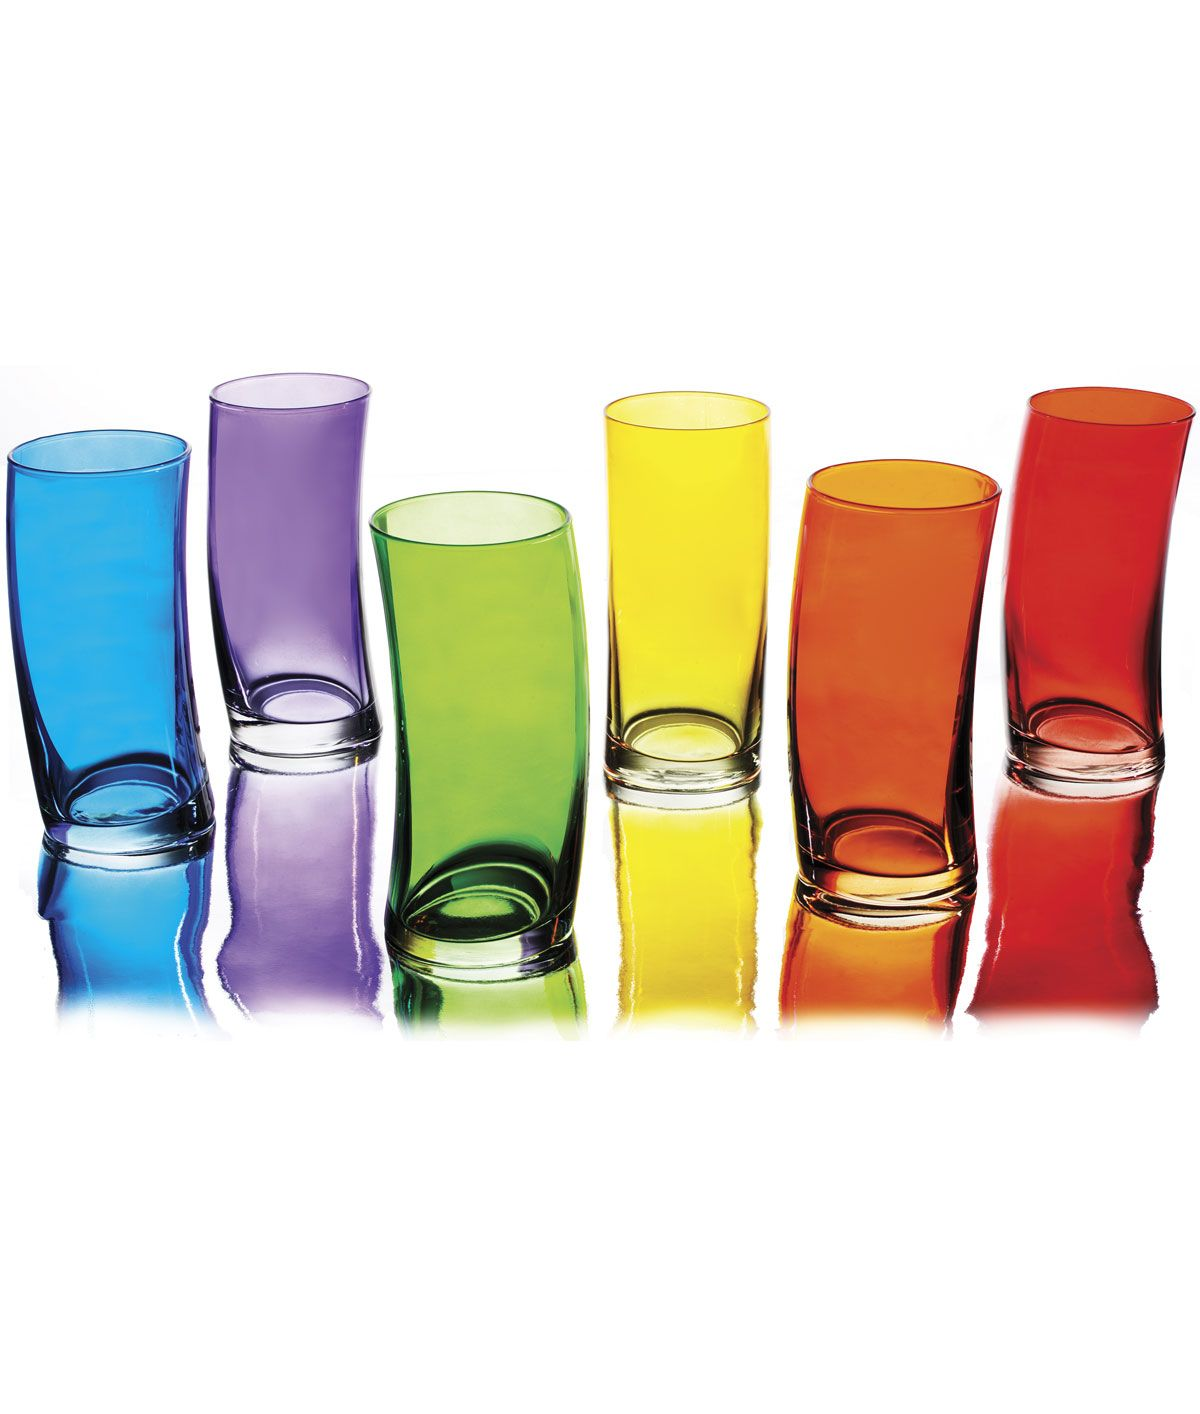 Swing Tumblers Swing Tumblers Bright Colorful Curved Glasses For Party Or Everyday Fun Tumbler Glass Fit Glass